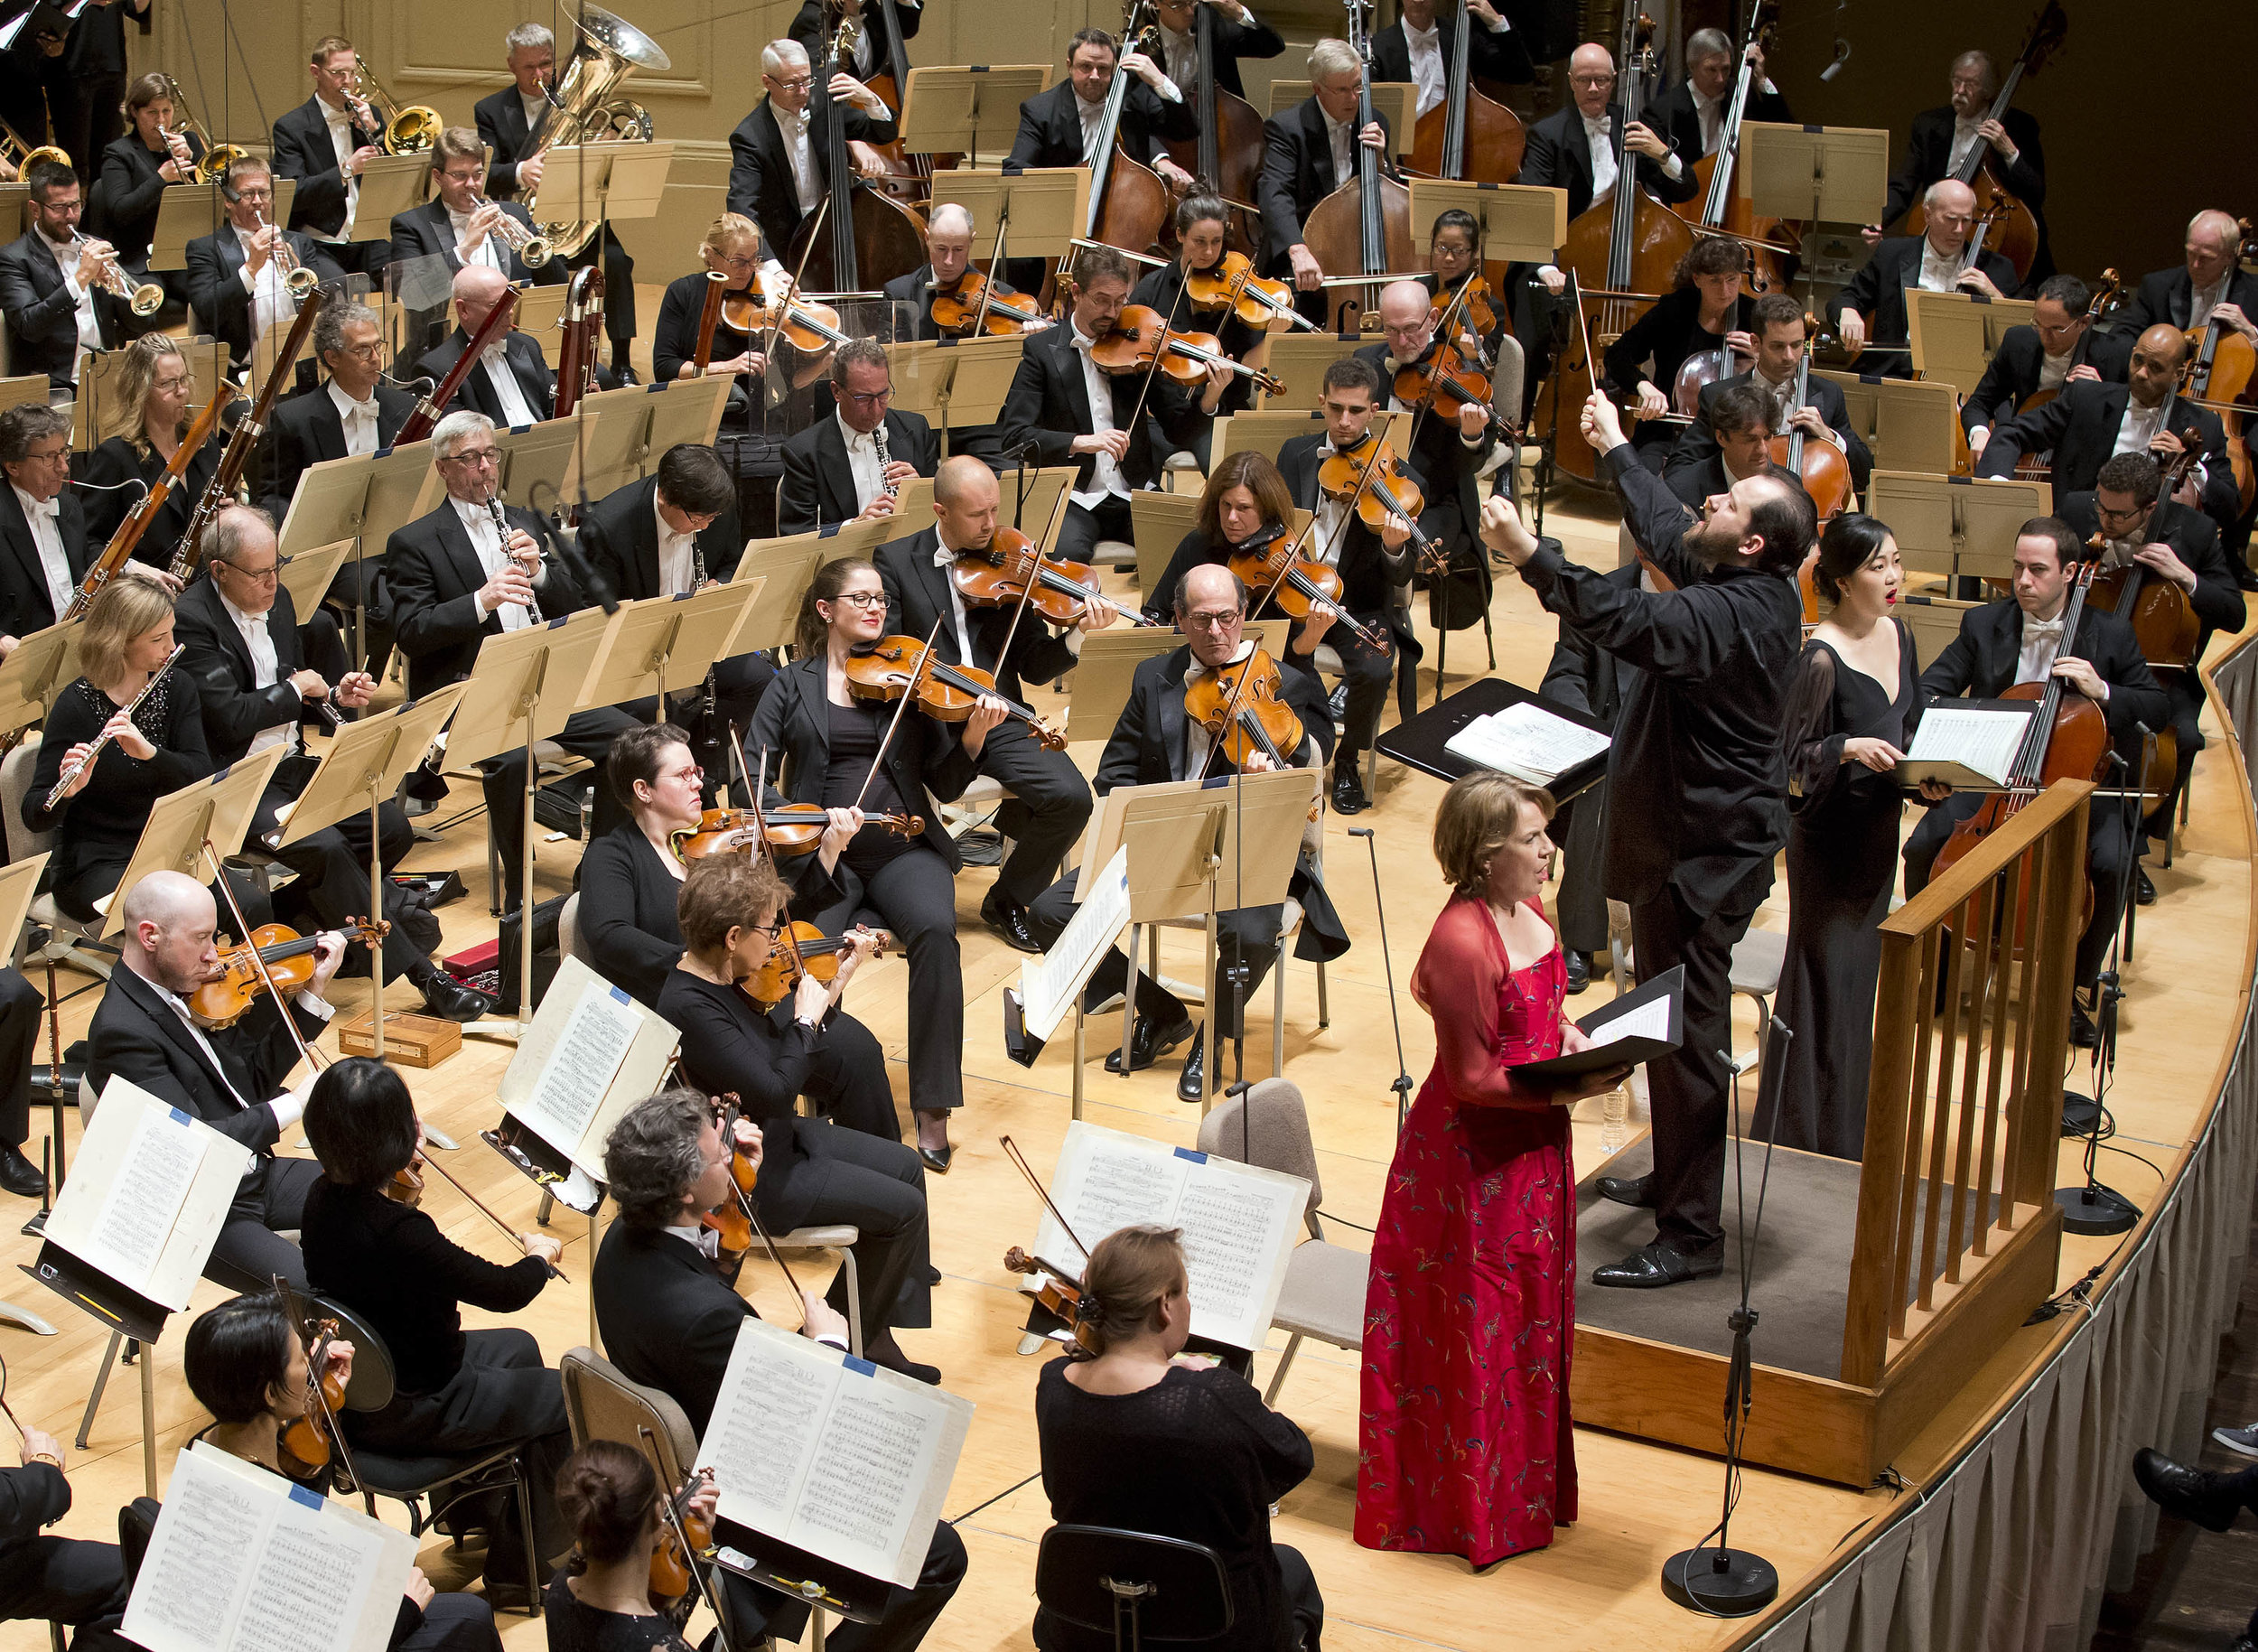 Andris Nelsons leads the Boston Symphony Orchestra and the Tanglewood Festival Chorus, with soloists Bernarda Fink (in red) and Ying Fang (in black, behind Nelsons), on Thursday, Oct. 25, 2018 in Symphony Hall. Winslow Townson photograph